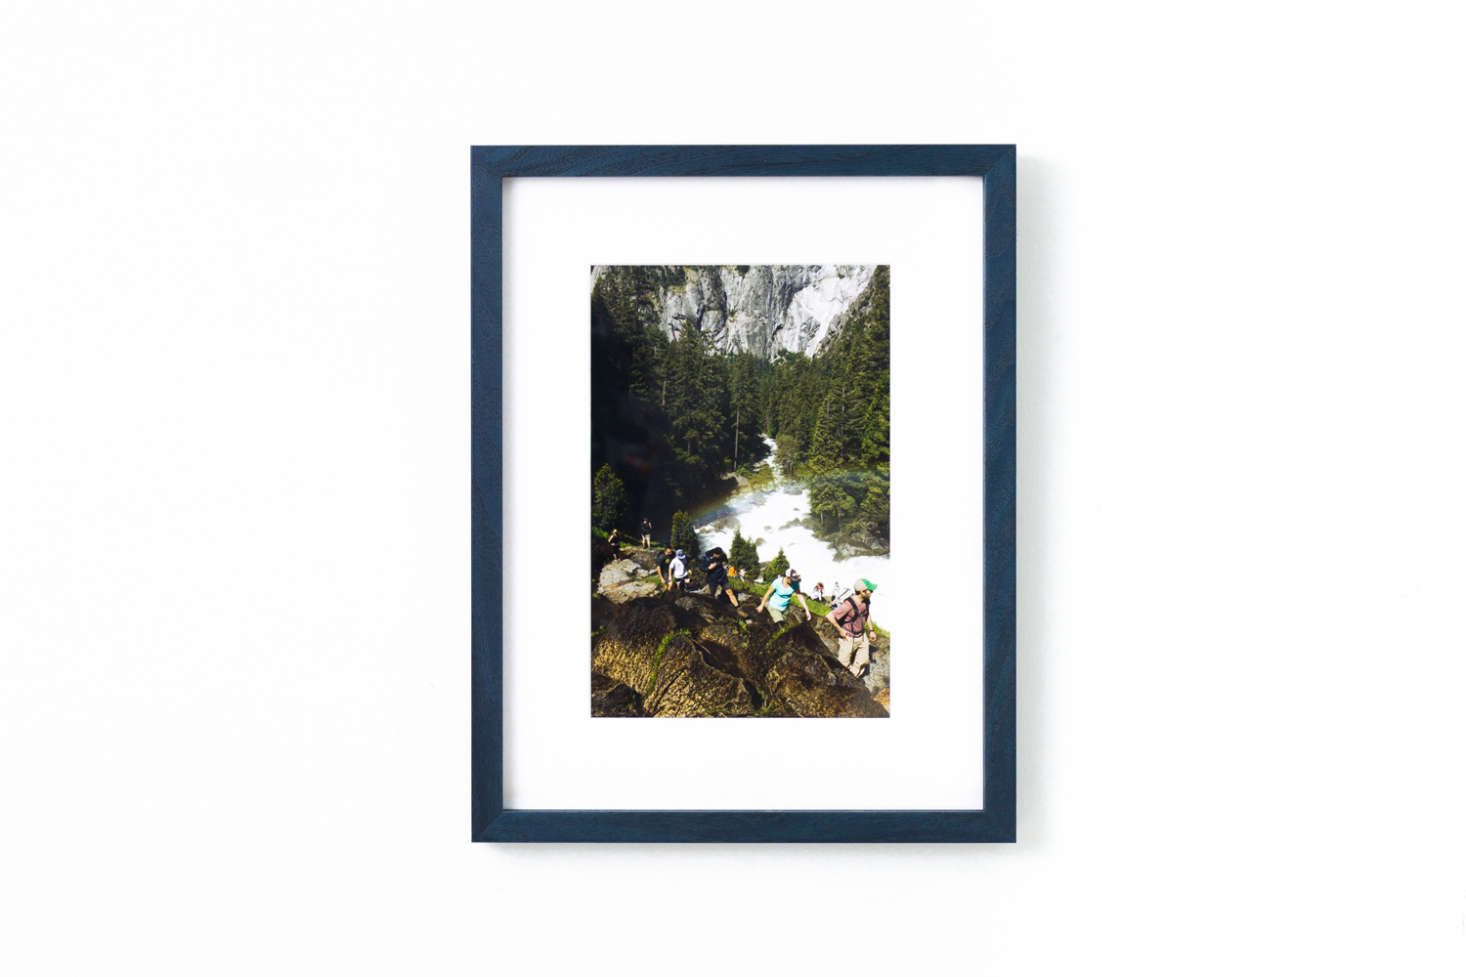 The Indigo Walnut Gallery Frame is a wood frame finished in deep blue; prices range depending on the article framed within available from Framebridge.